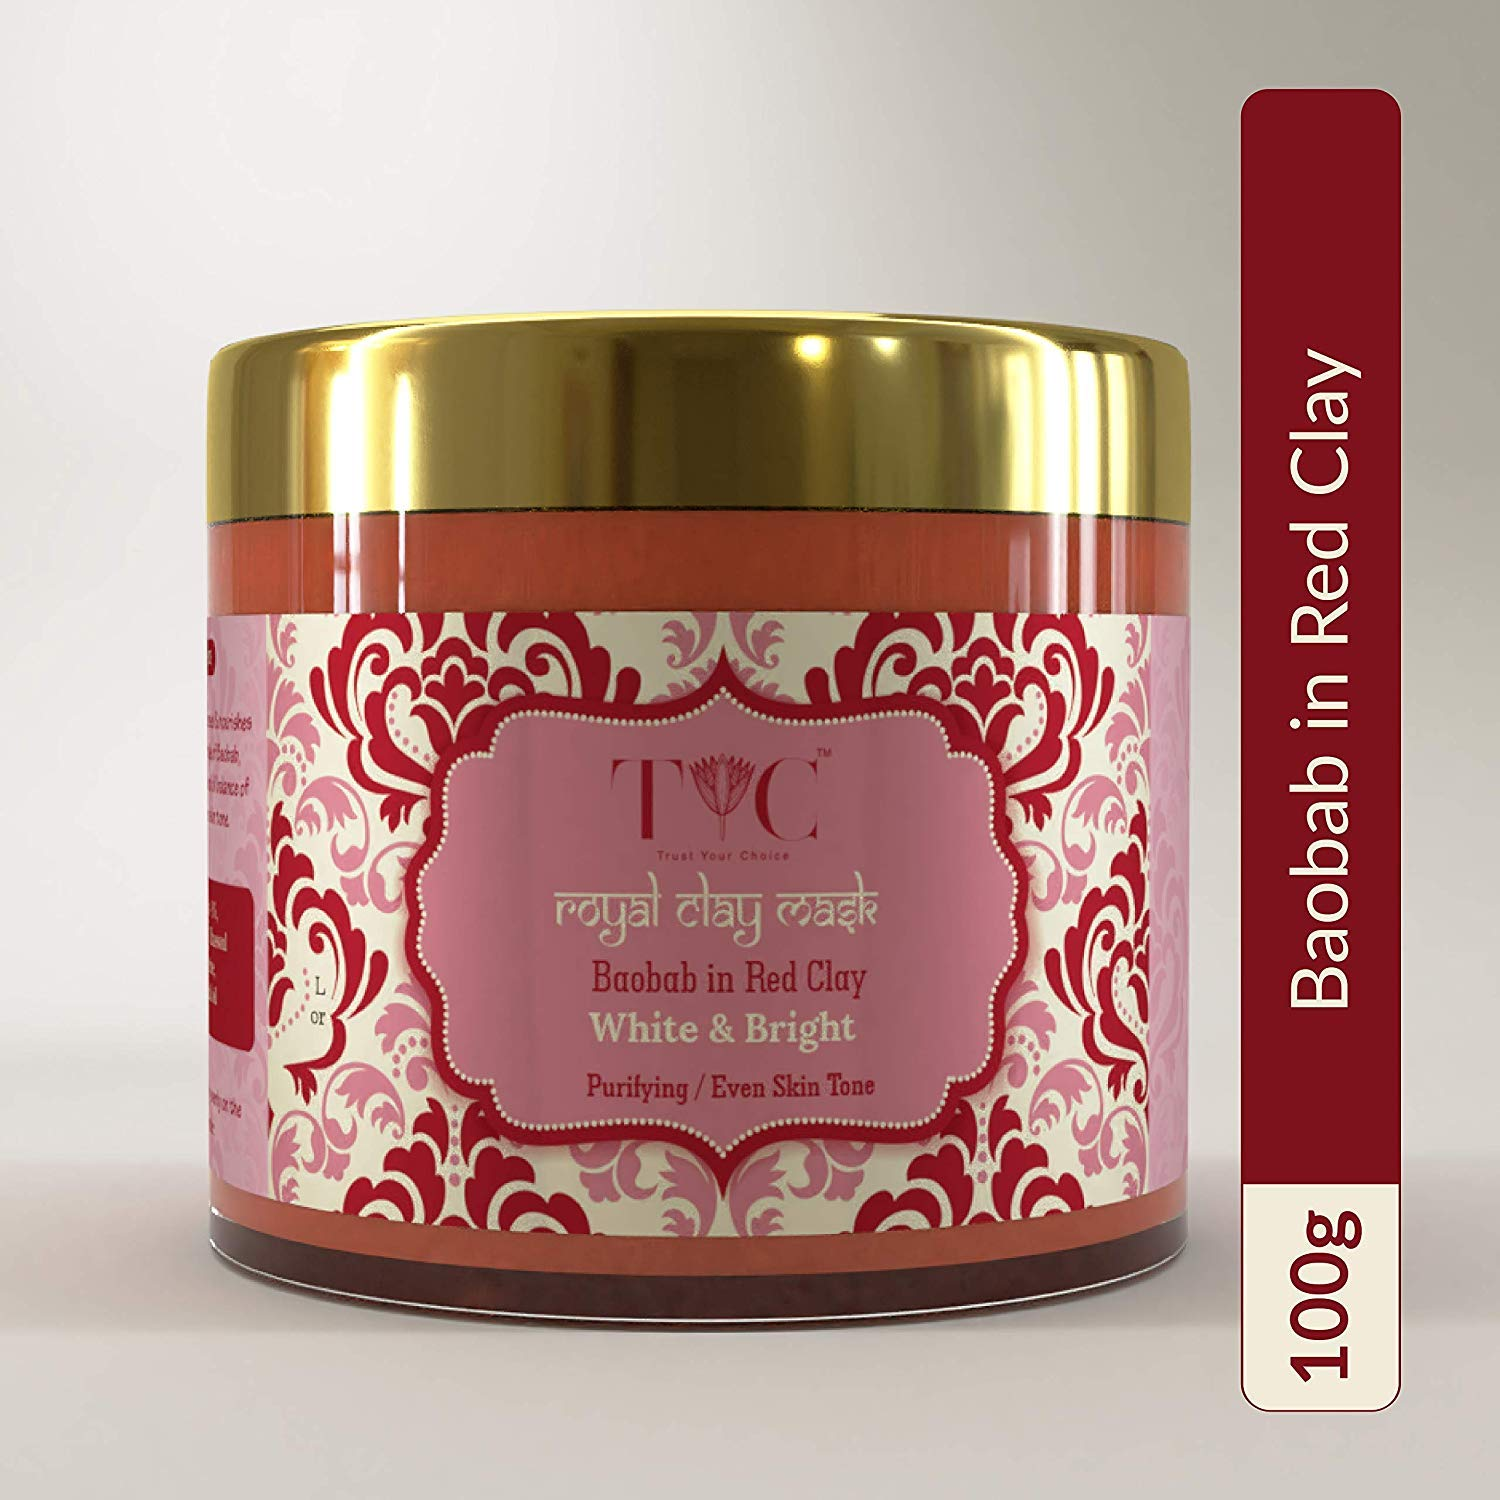 Buy Tyc Brightening Red Clay Mud Face Mask For Fairness Glowing Skin Lighten Scars White Bright Repair Pigmentation Tanning Free Even Tone Skin 100 Gm Online At